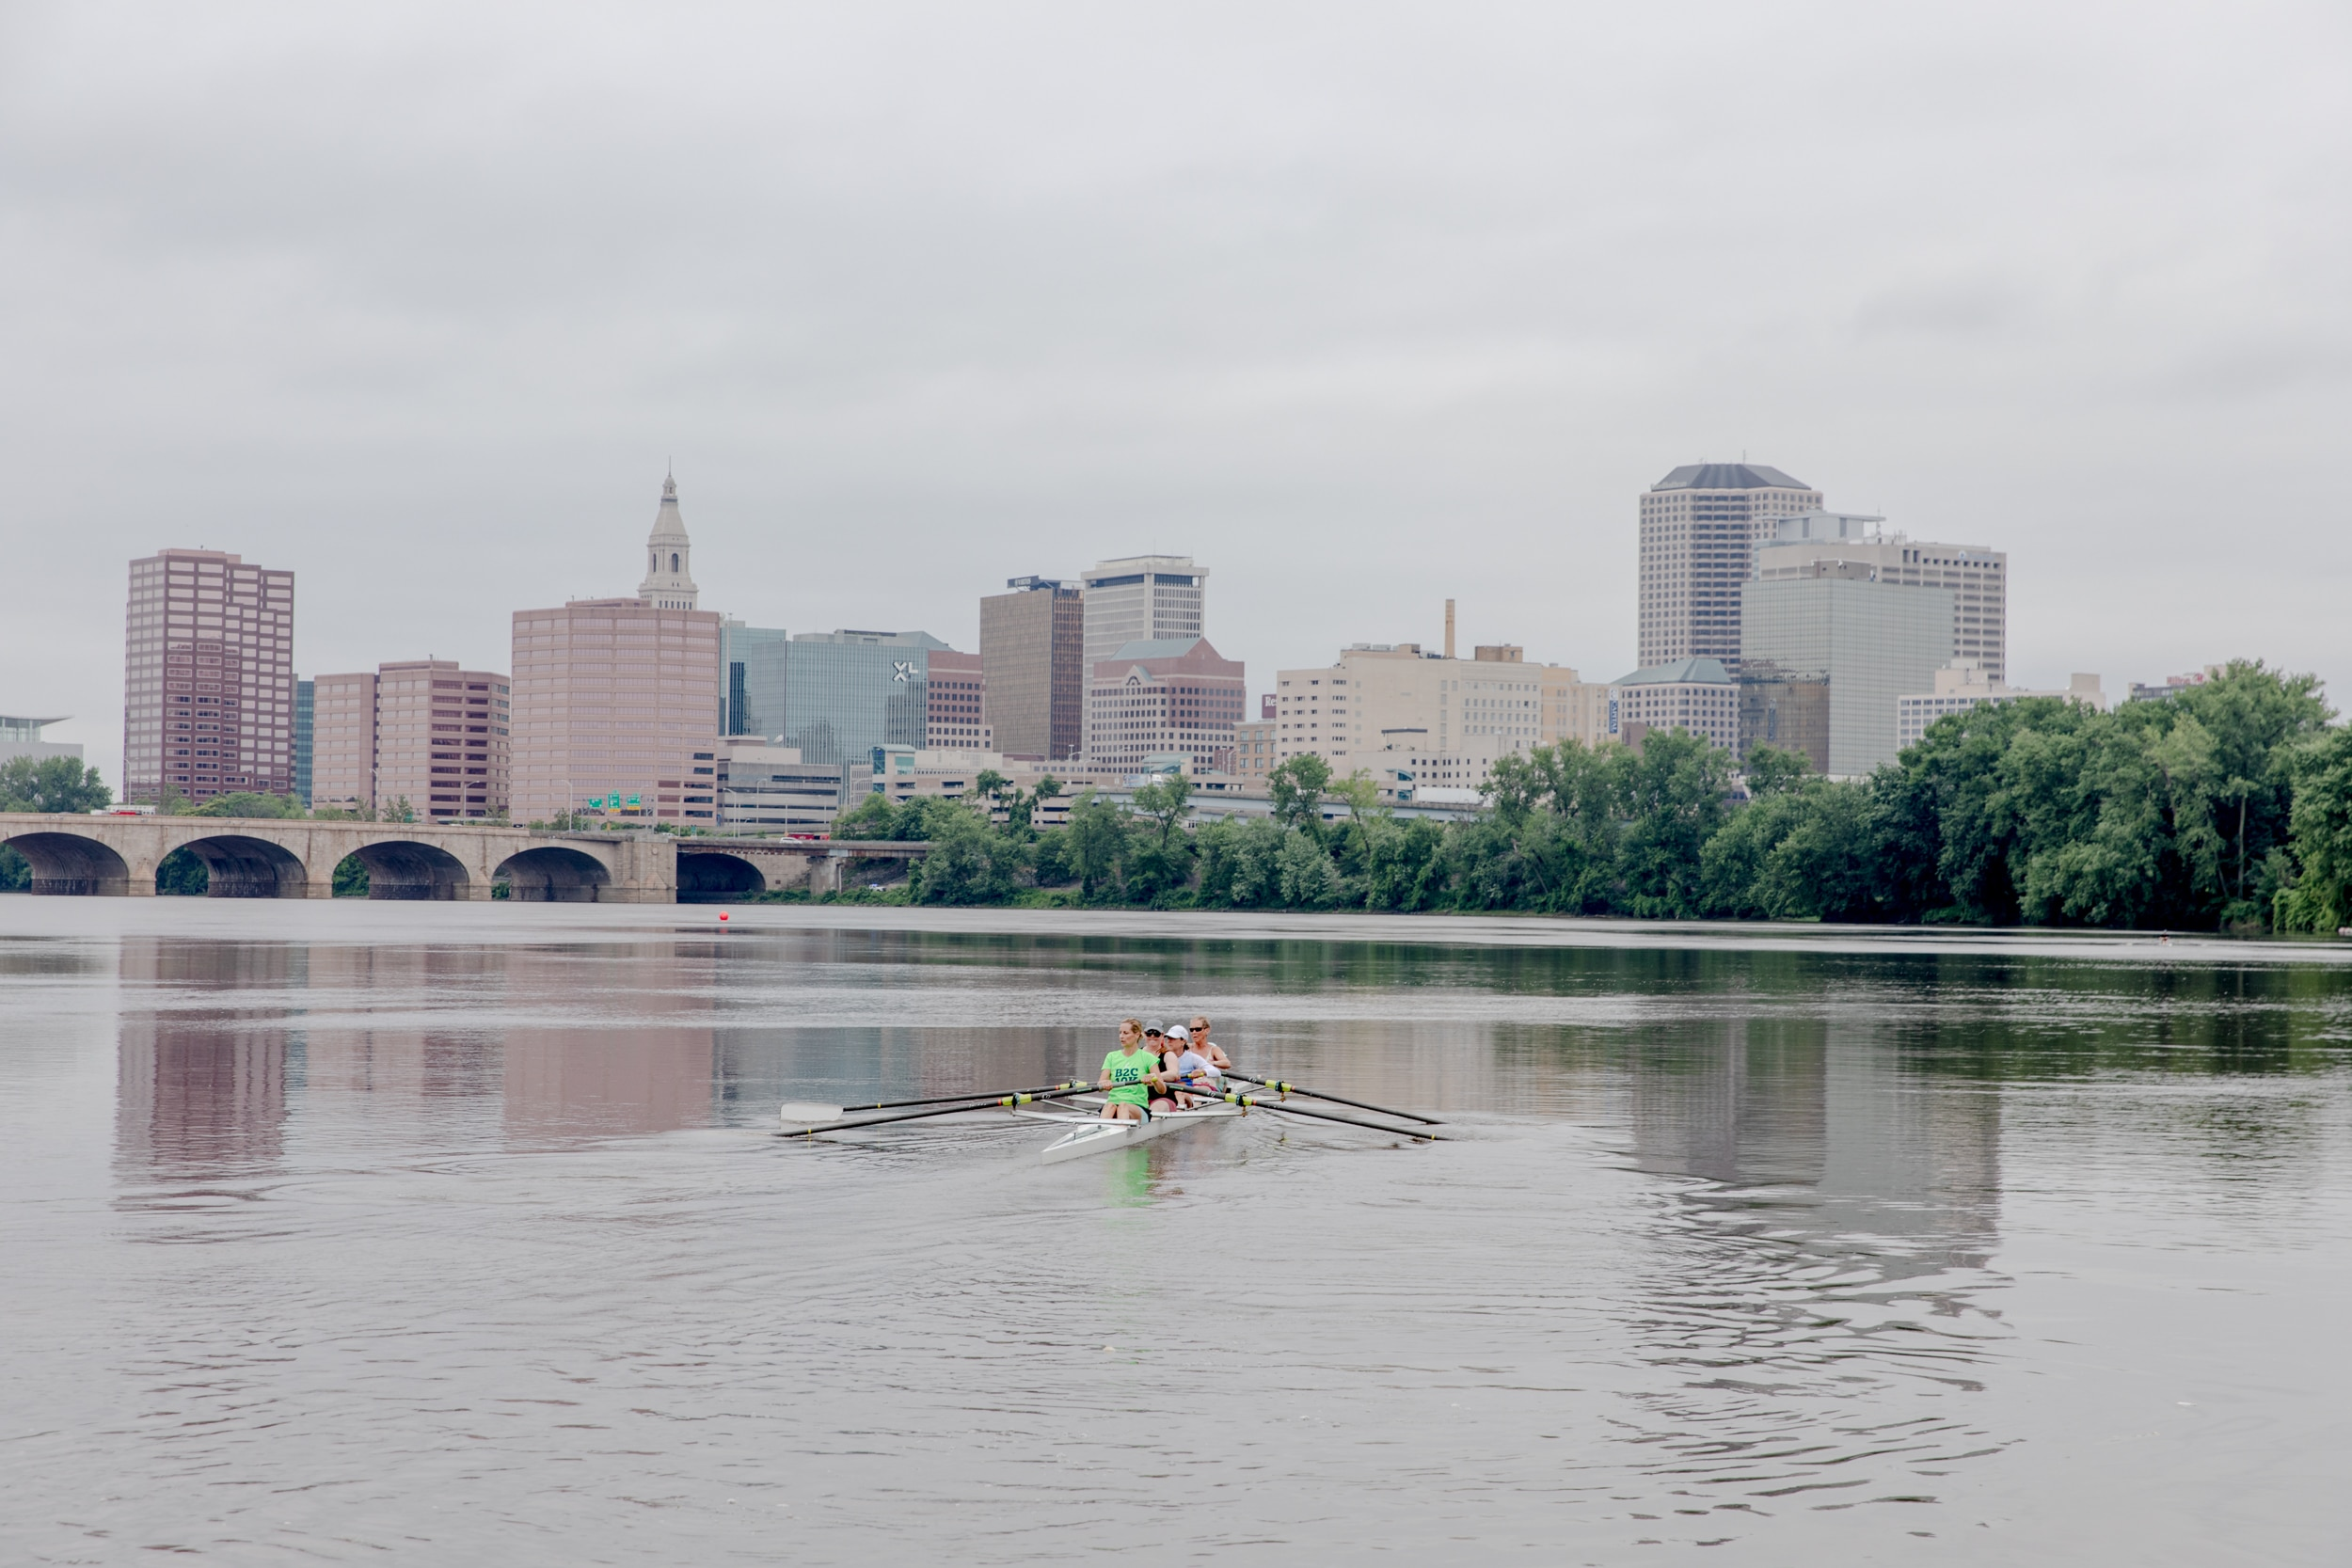 Getting back to the river: A tale of two Connecticut cities